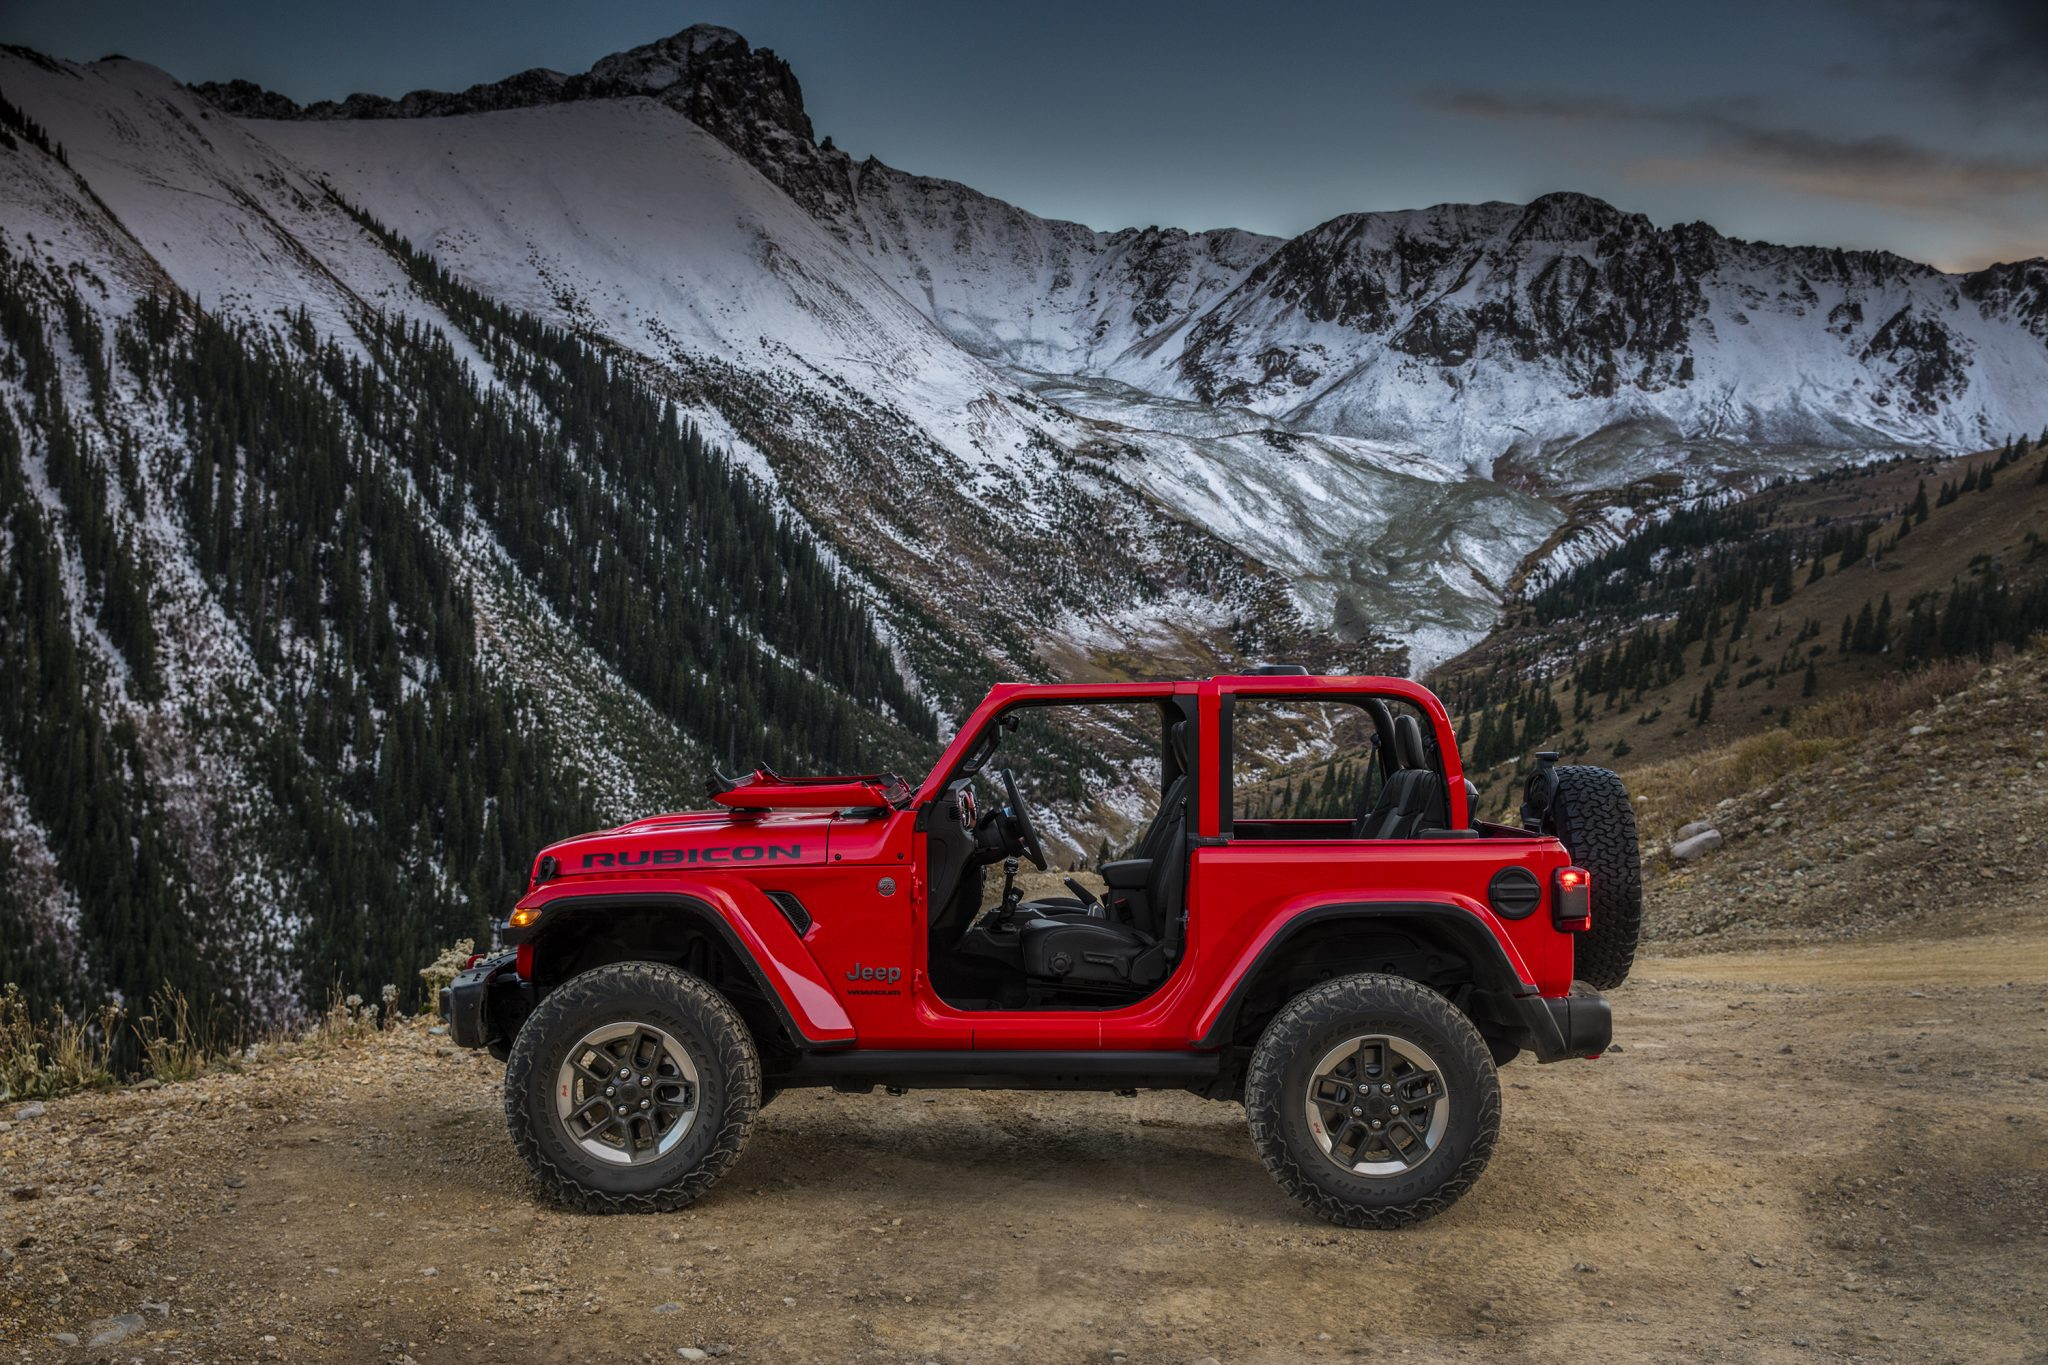 Here is the all-new 2018 Jeep Wrangler